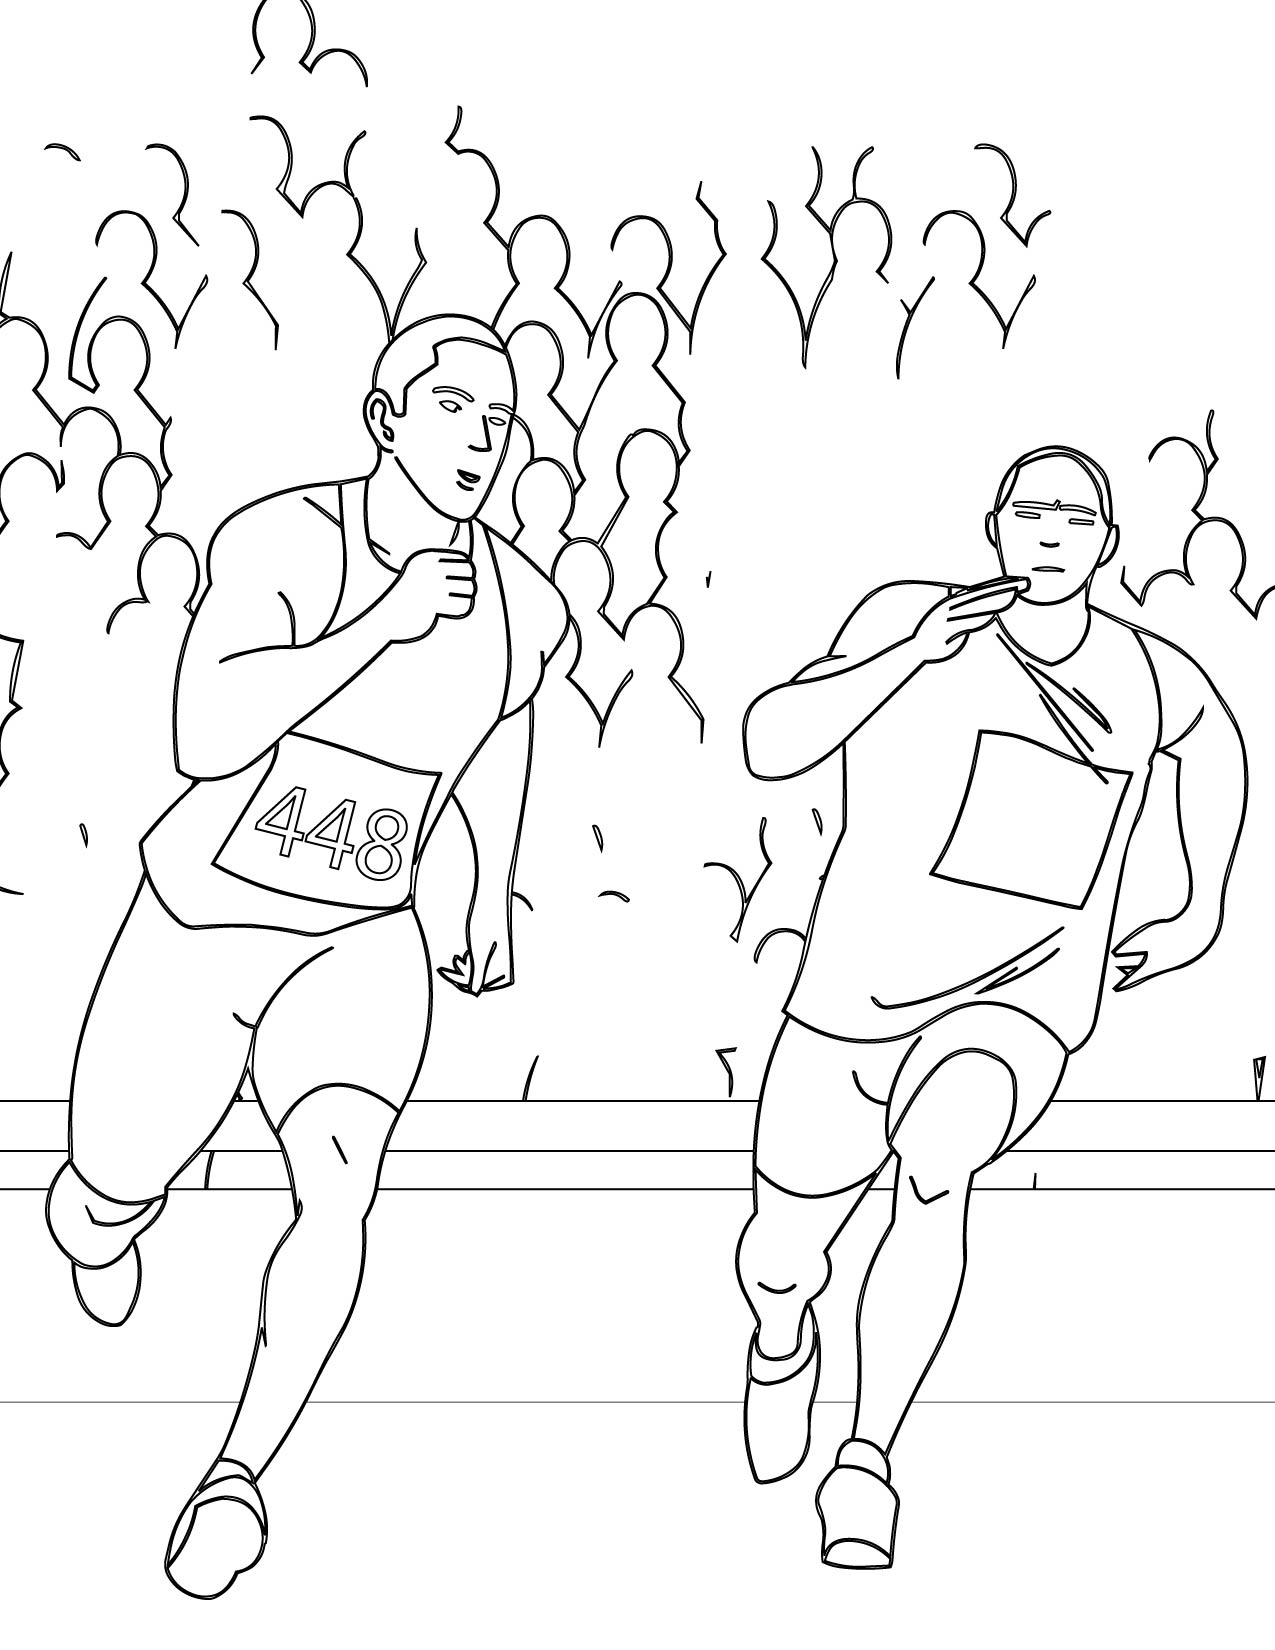 running the race coloring pages - photo#36